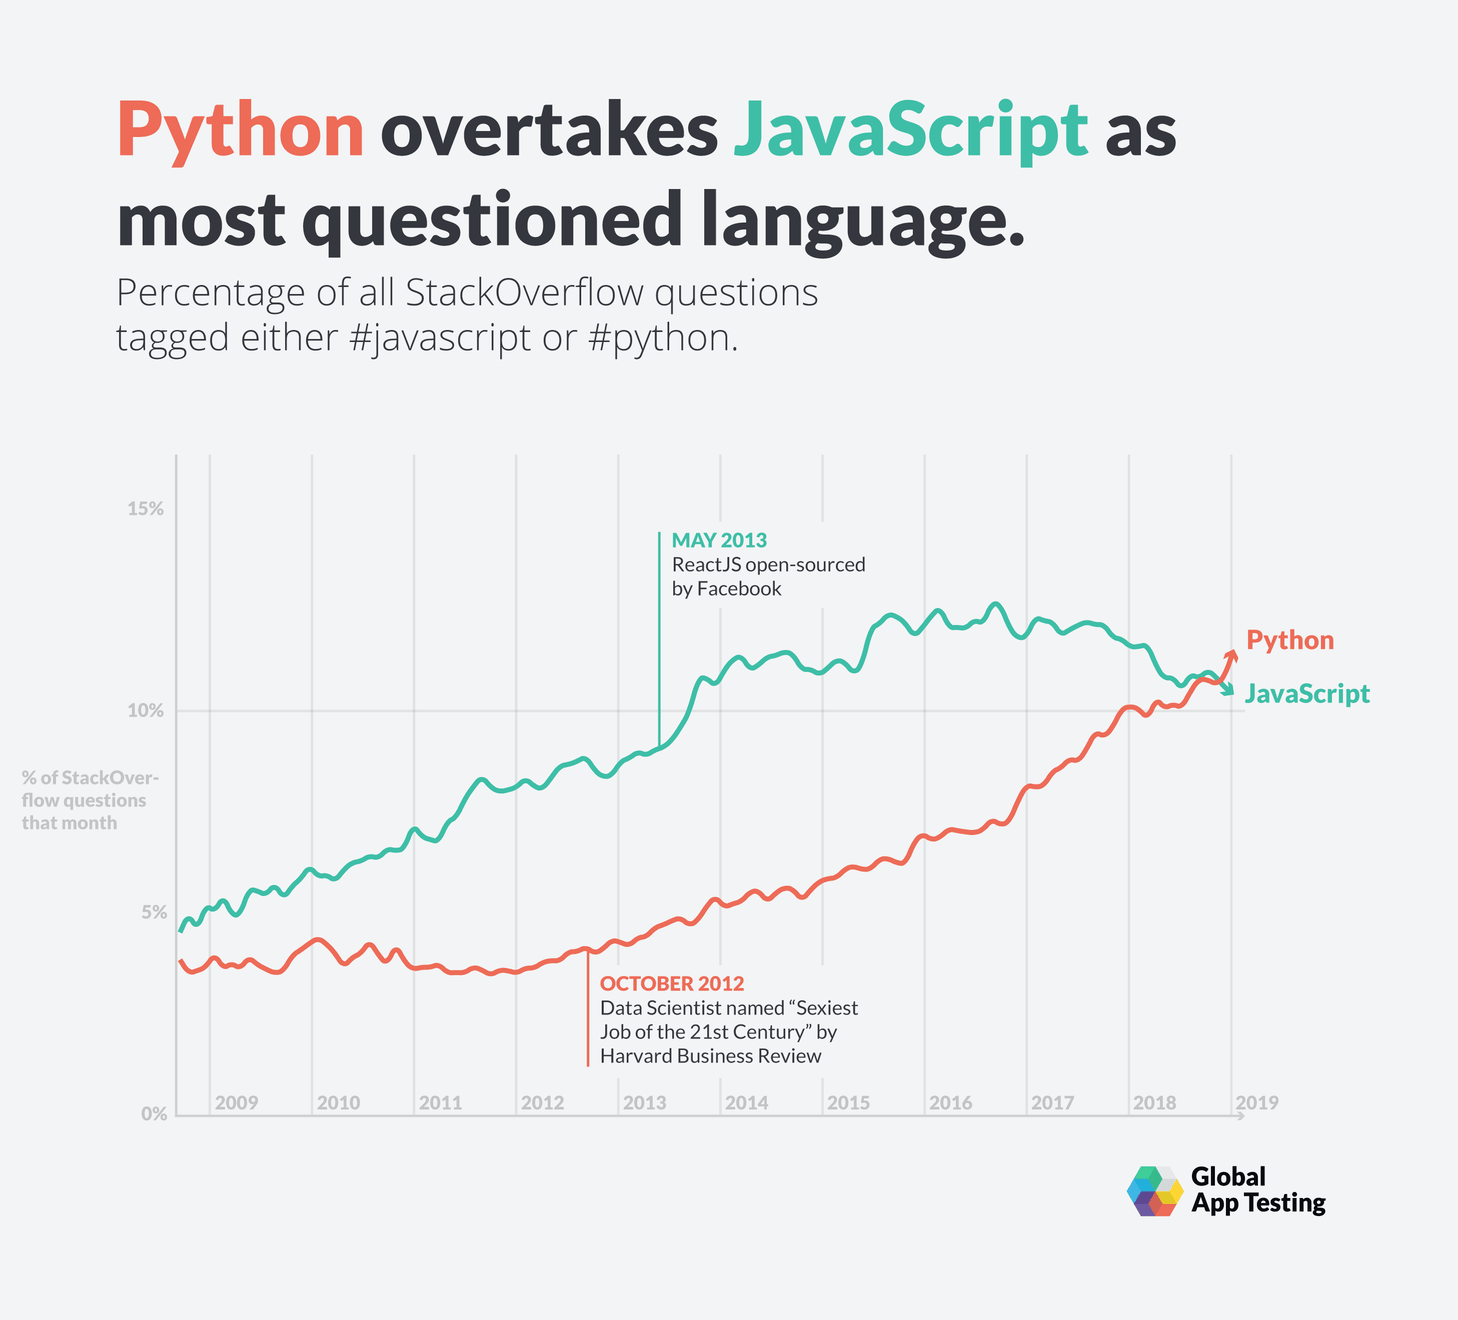 Python will overtake JavaScript in 2019 as the most questioned language.